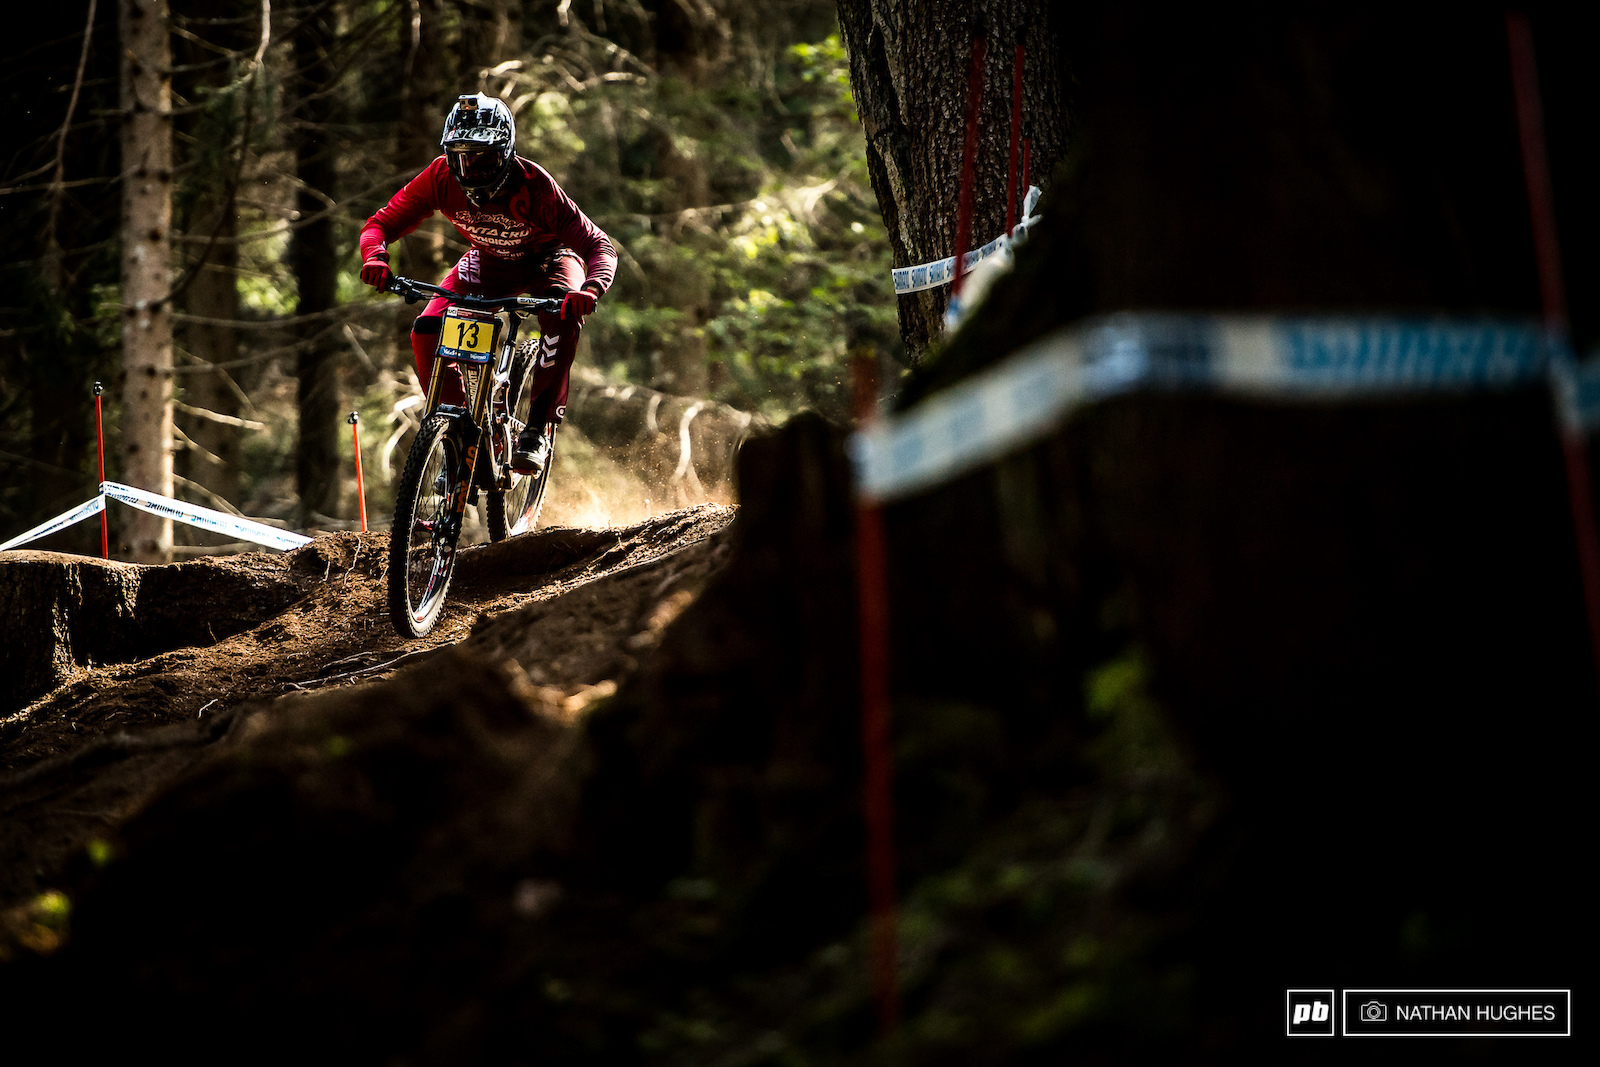 Luca Shaw looking for luck in the loam to counter his plate.